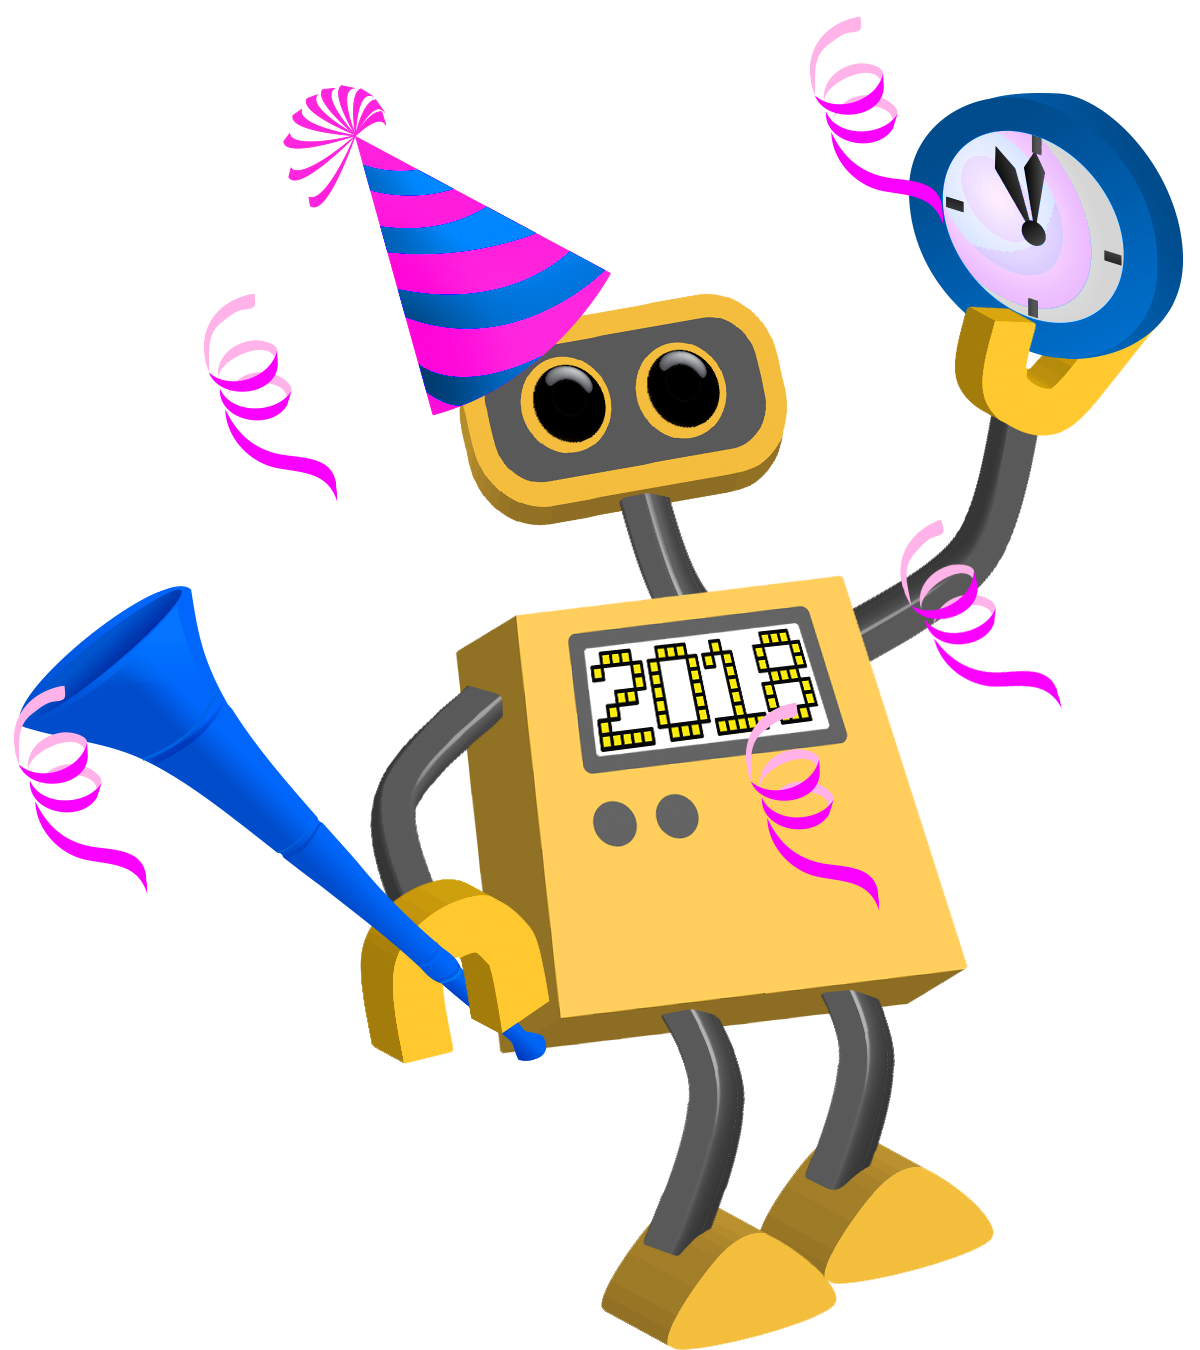 robot 76 happy new year 2018